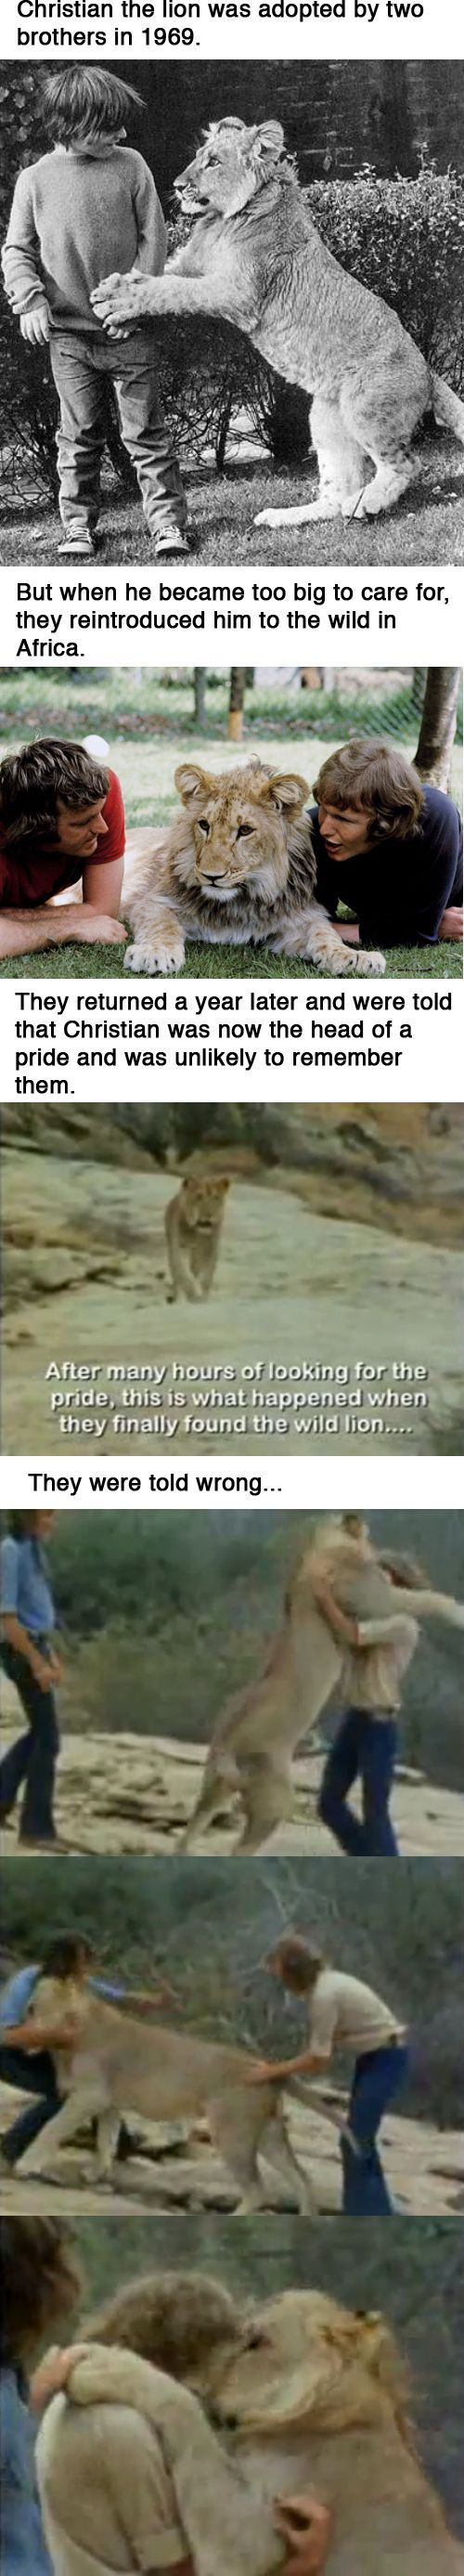 LOVE the story of Christian the lion!